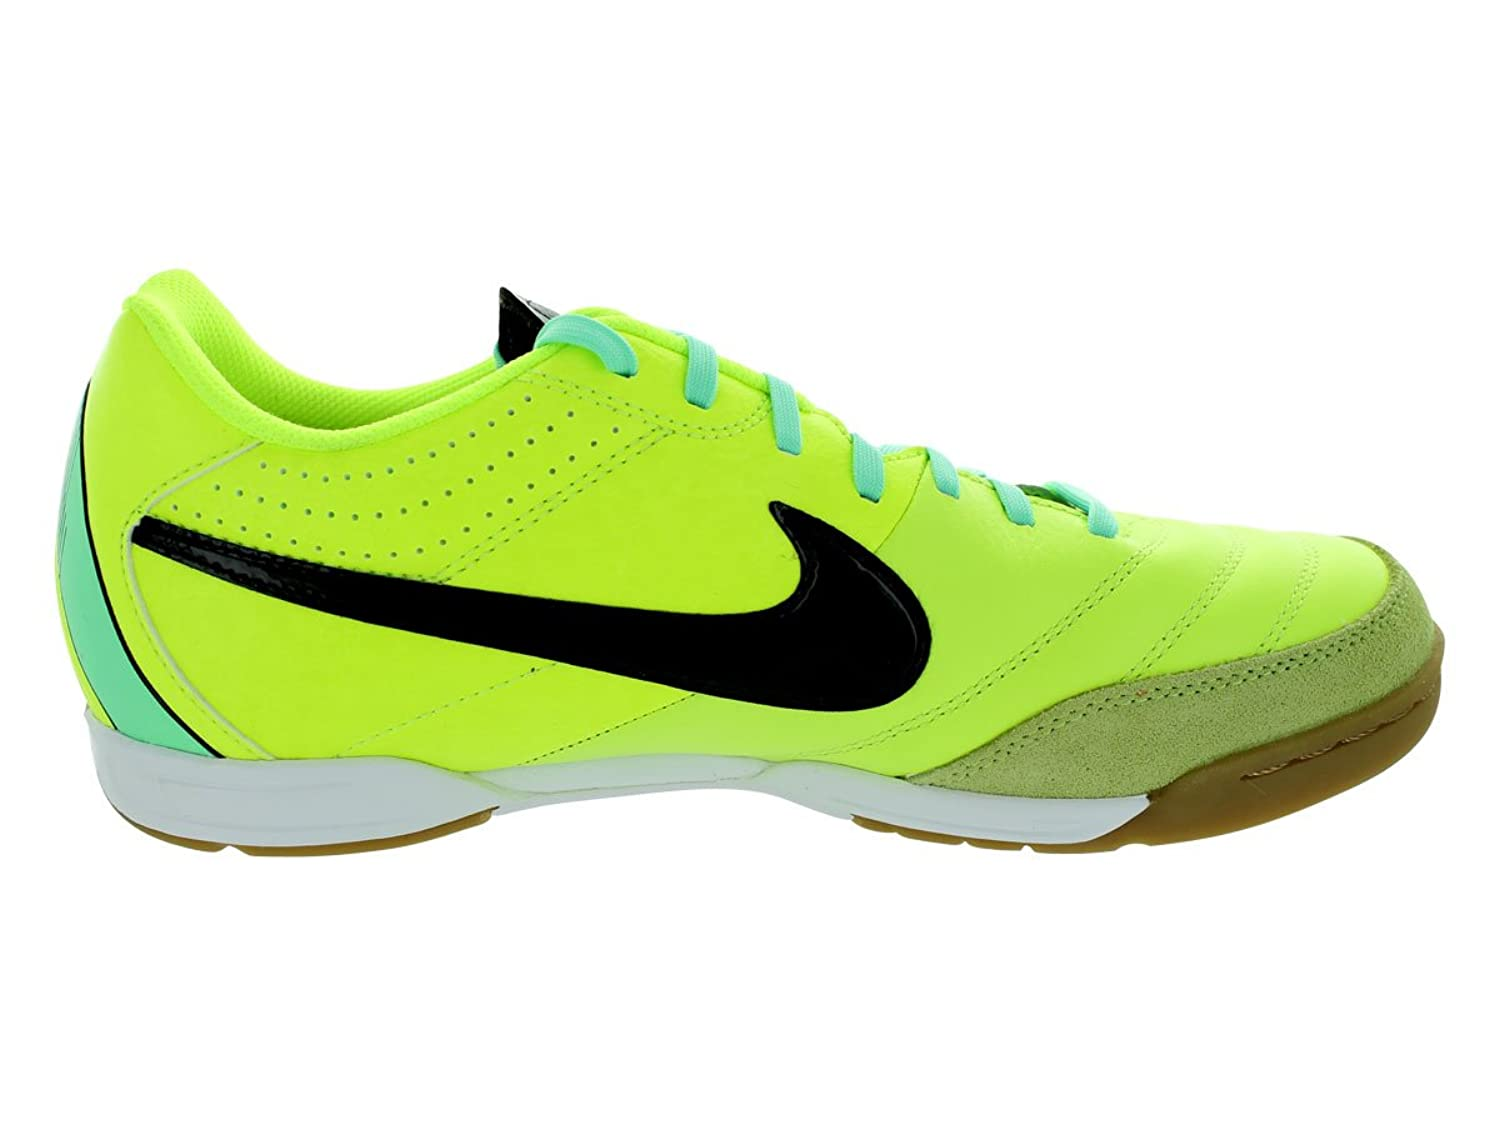 9dbf423b1d005 Mens Nike Tiempo Natural IV Leather Indoor Soccer Cleat Volt/Green  Glow/Black